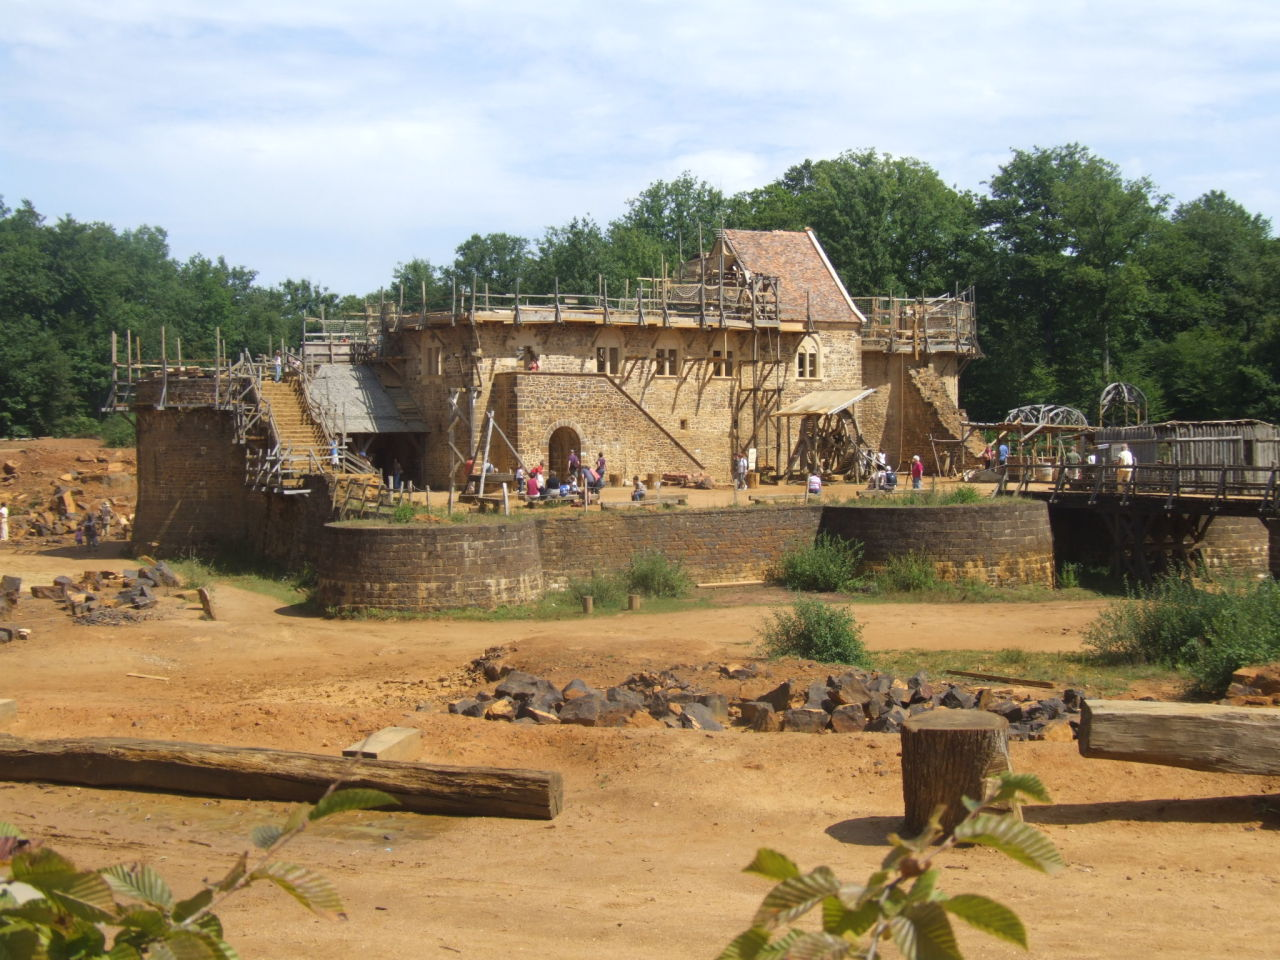 The Guédelon Castle In the heart of Puisaye, in Yonne, Burgundy, a team of fifty people have taken on an extraordinary feat: to build a castle using the same techniques and materials used in the Middle Ages.  The wood, stone, earth, sand and clay needed for the castle's construction are all to be found here, in this abandoned quarry. Watched by thousands of visitors, all the trades associated with castle-building - quarrymen, stonemasons, woodcutters, carpenters, blacksmiths, tile makers, basket makers, rope makers, carters and their horses - are all working together to complete the castle. Work on the site began in 1997 and is scheduled to take 25 years to complete. Visit the project's official site